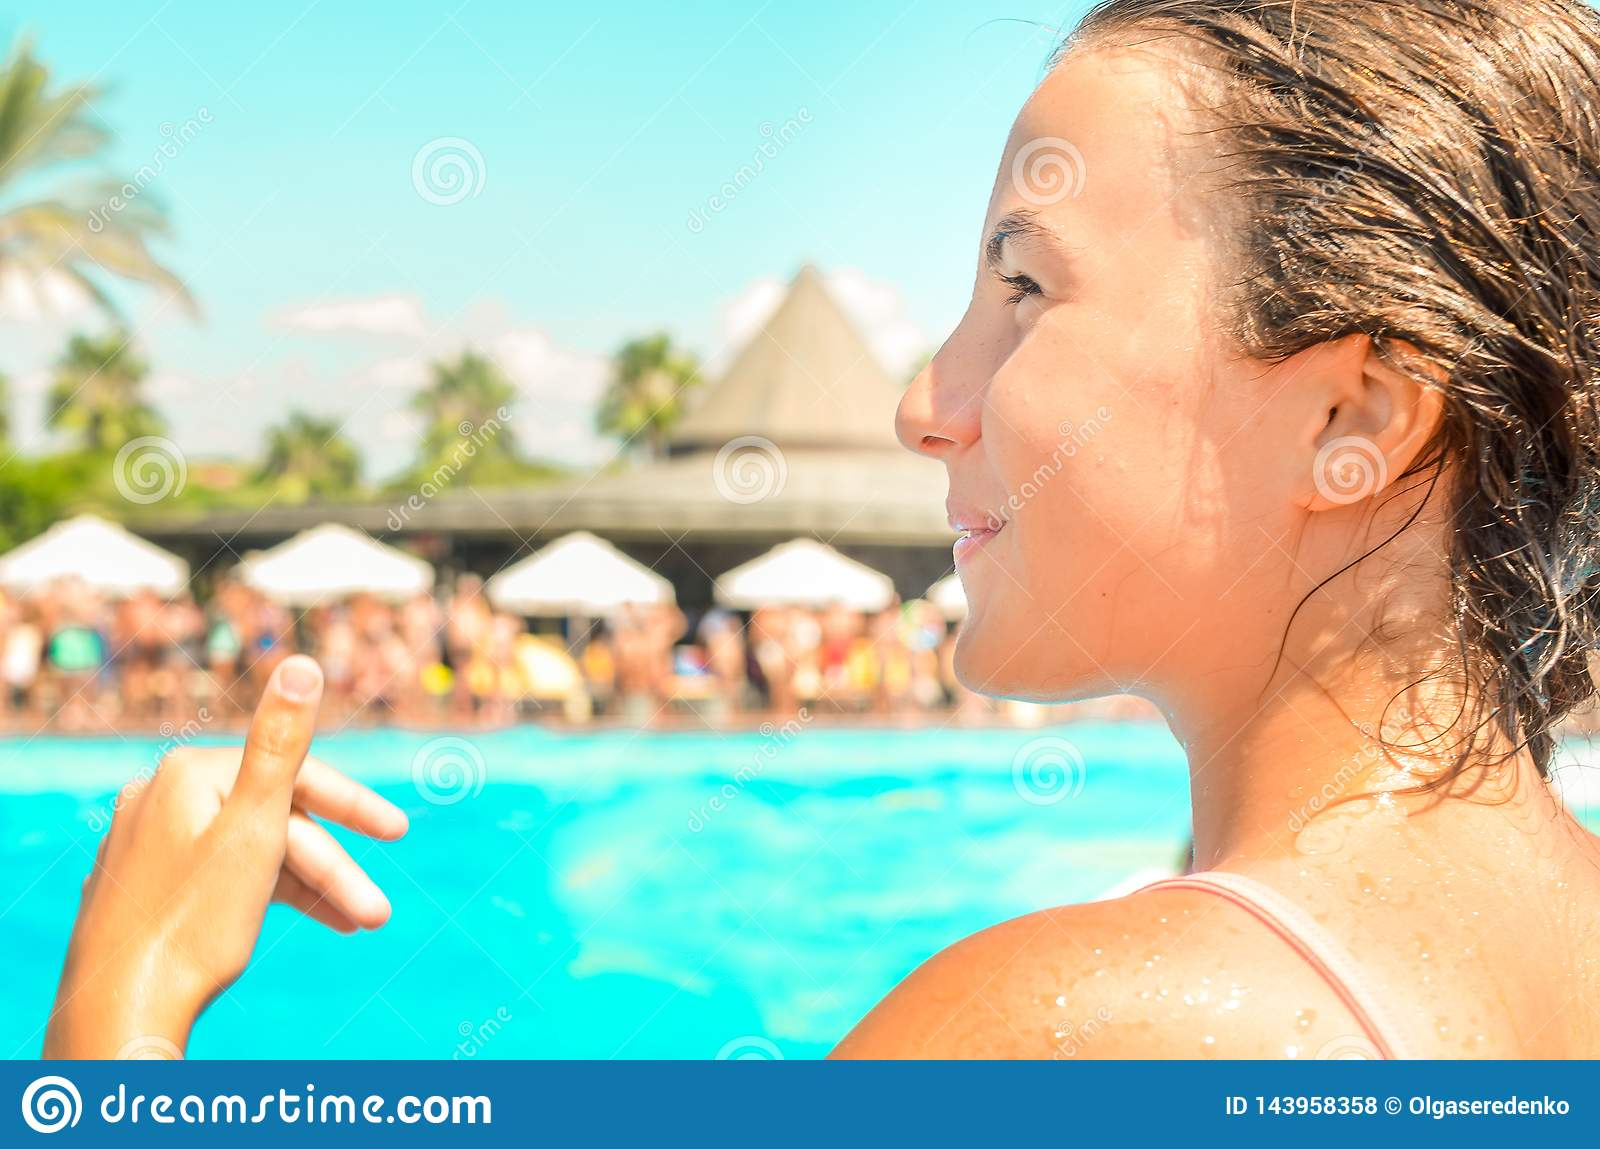 Smiling teen girl enjoing summer vacation at the hotel pool with palms and sun umbrellas on the background